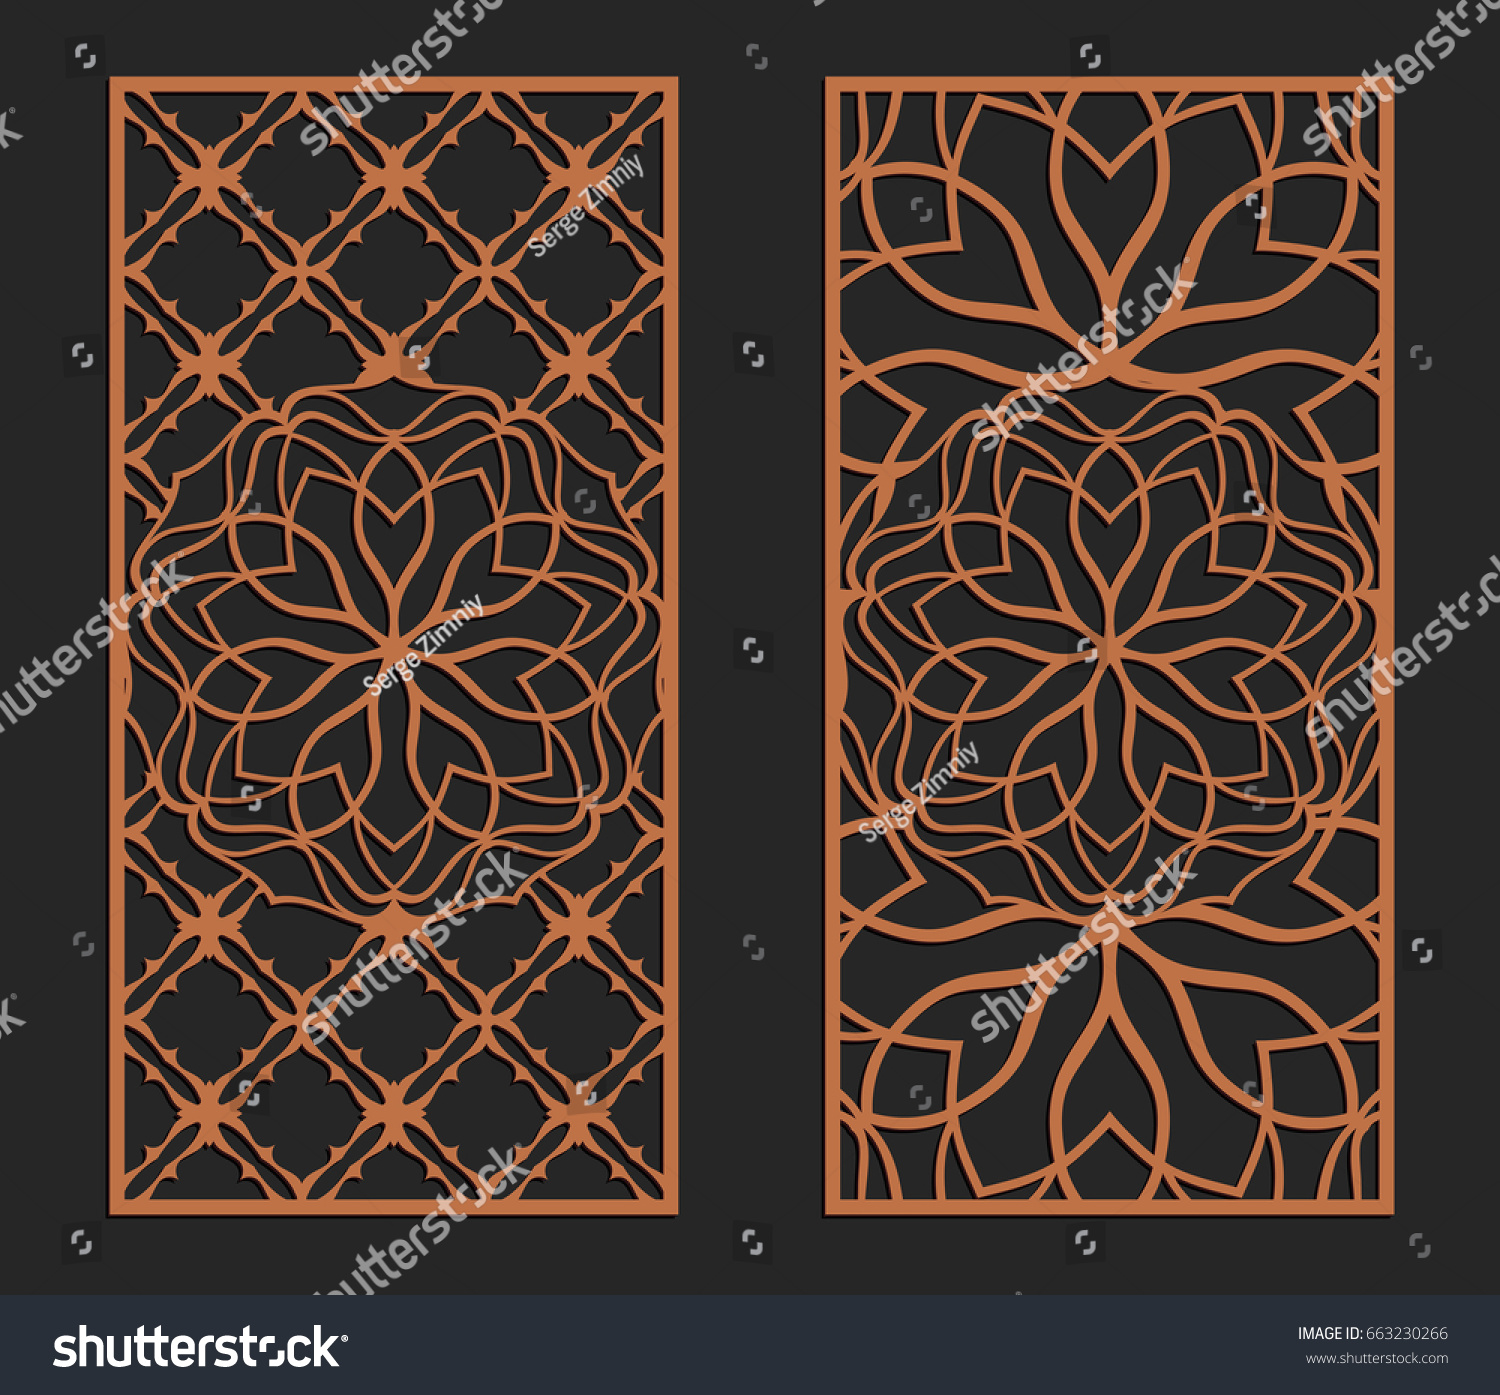 Cut Out Decorative Wall Panels : Laser cutting set wall panels jigsaw stock vector